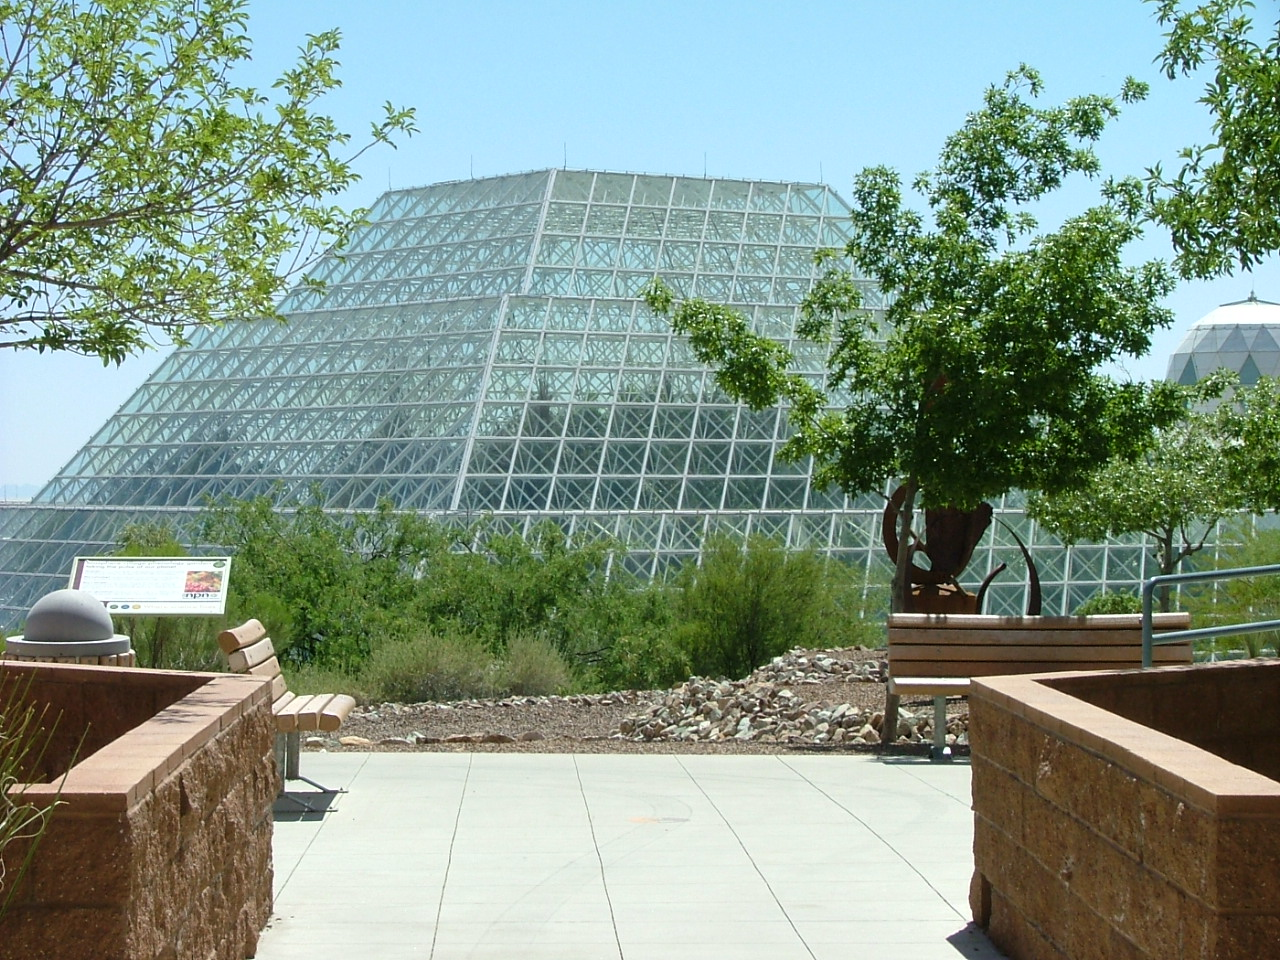 Biosphere 2 by DrStarbuck, on Flickr